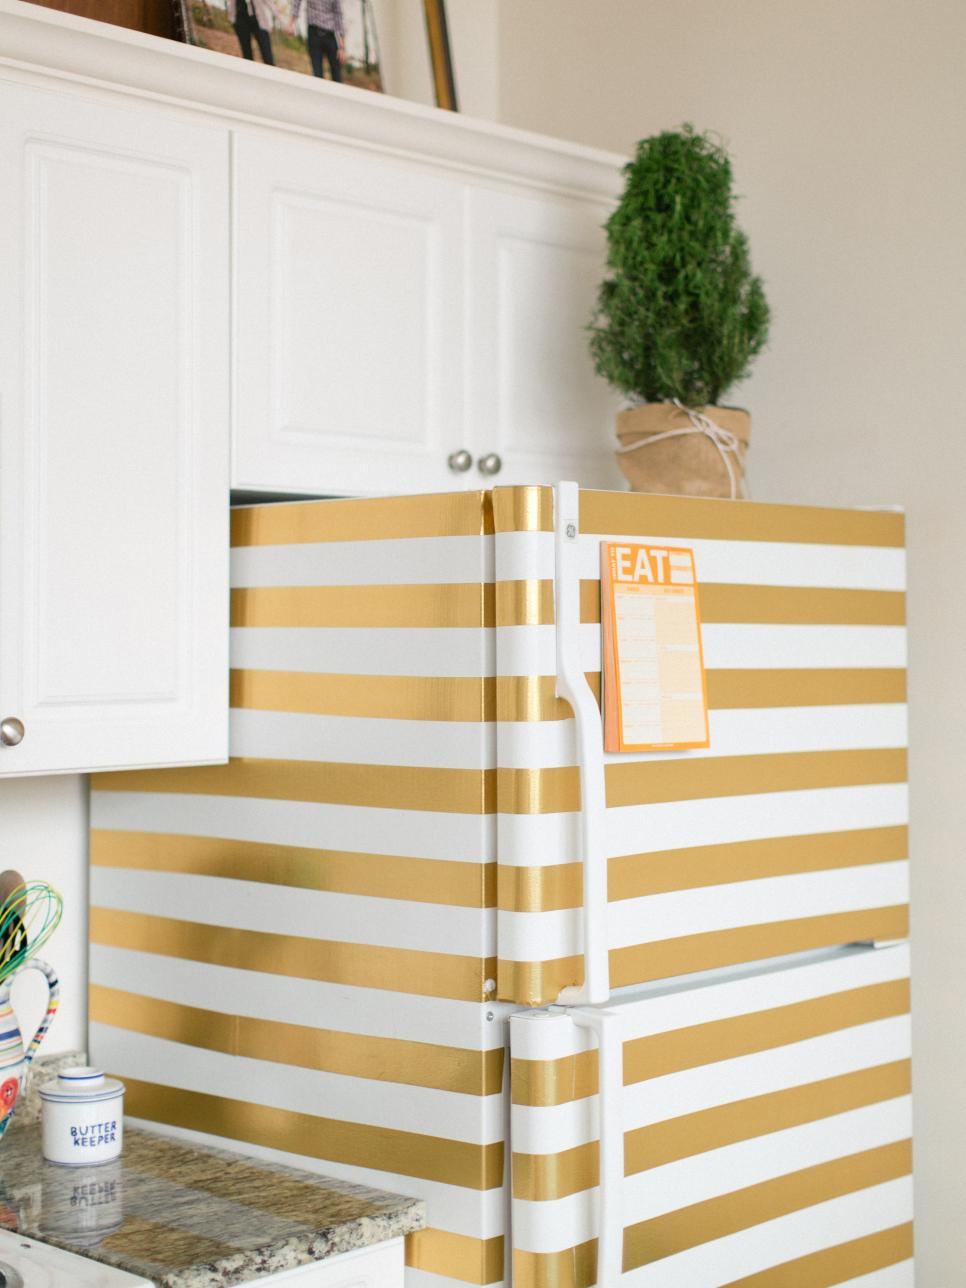 ci-honey-and-fitz_masking-tape-fridge_v-jpg-rend-hgtvcom-966-1288